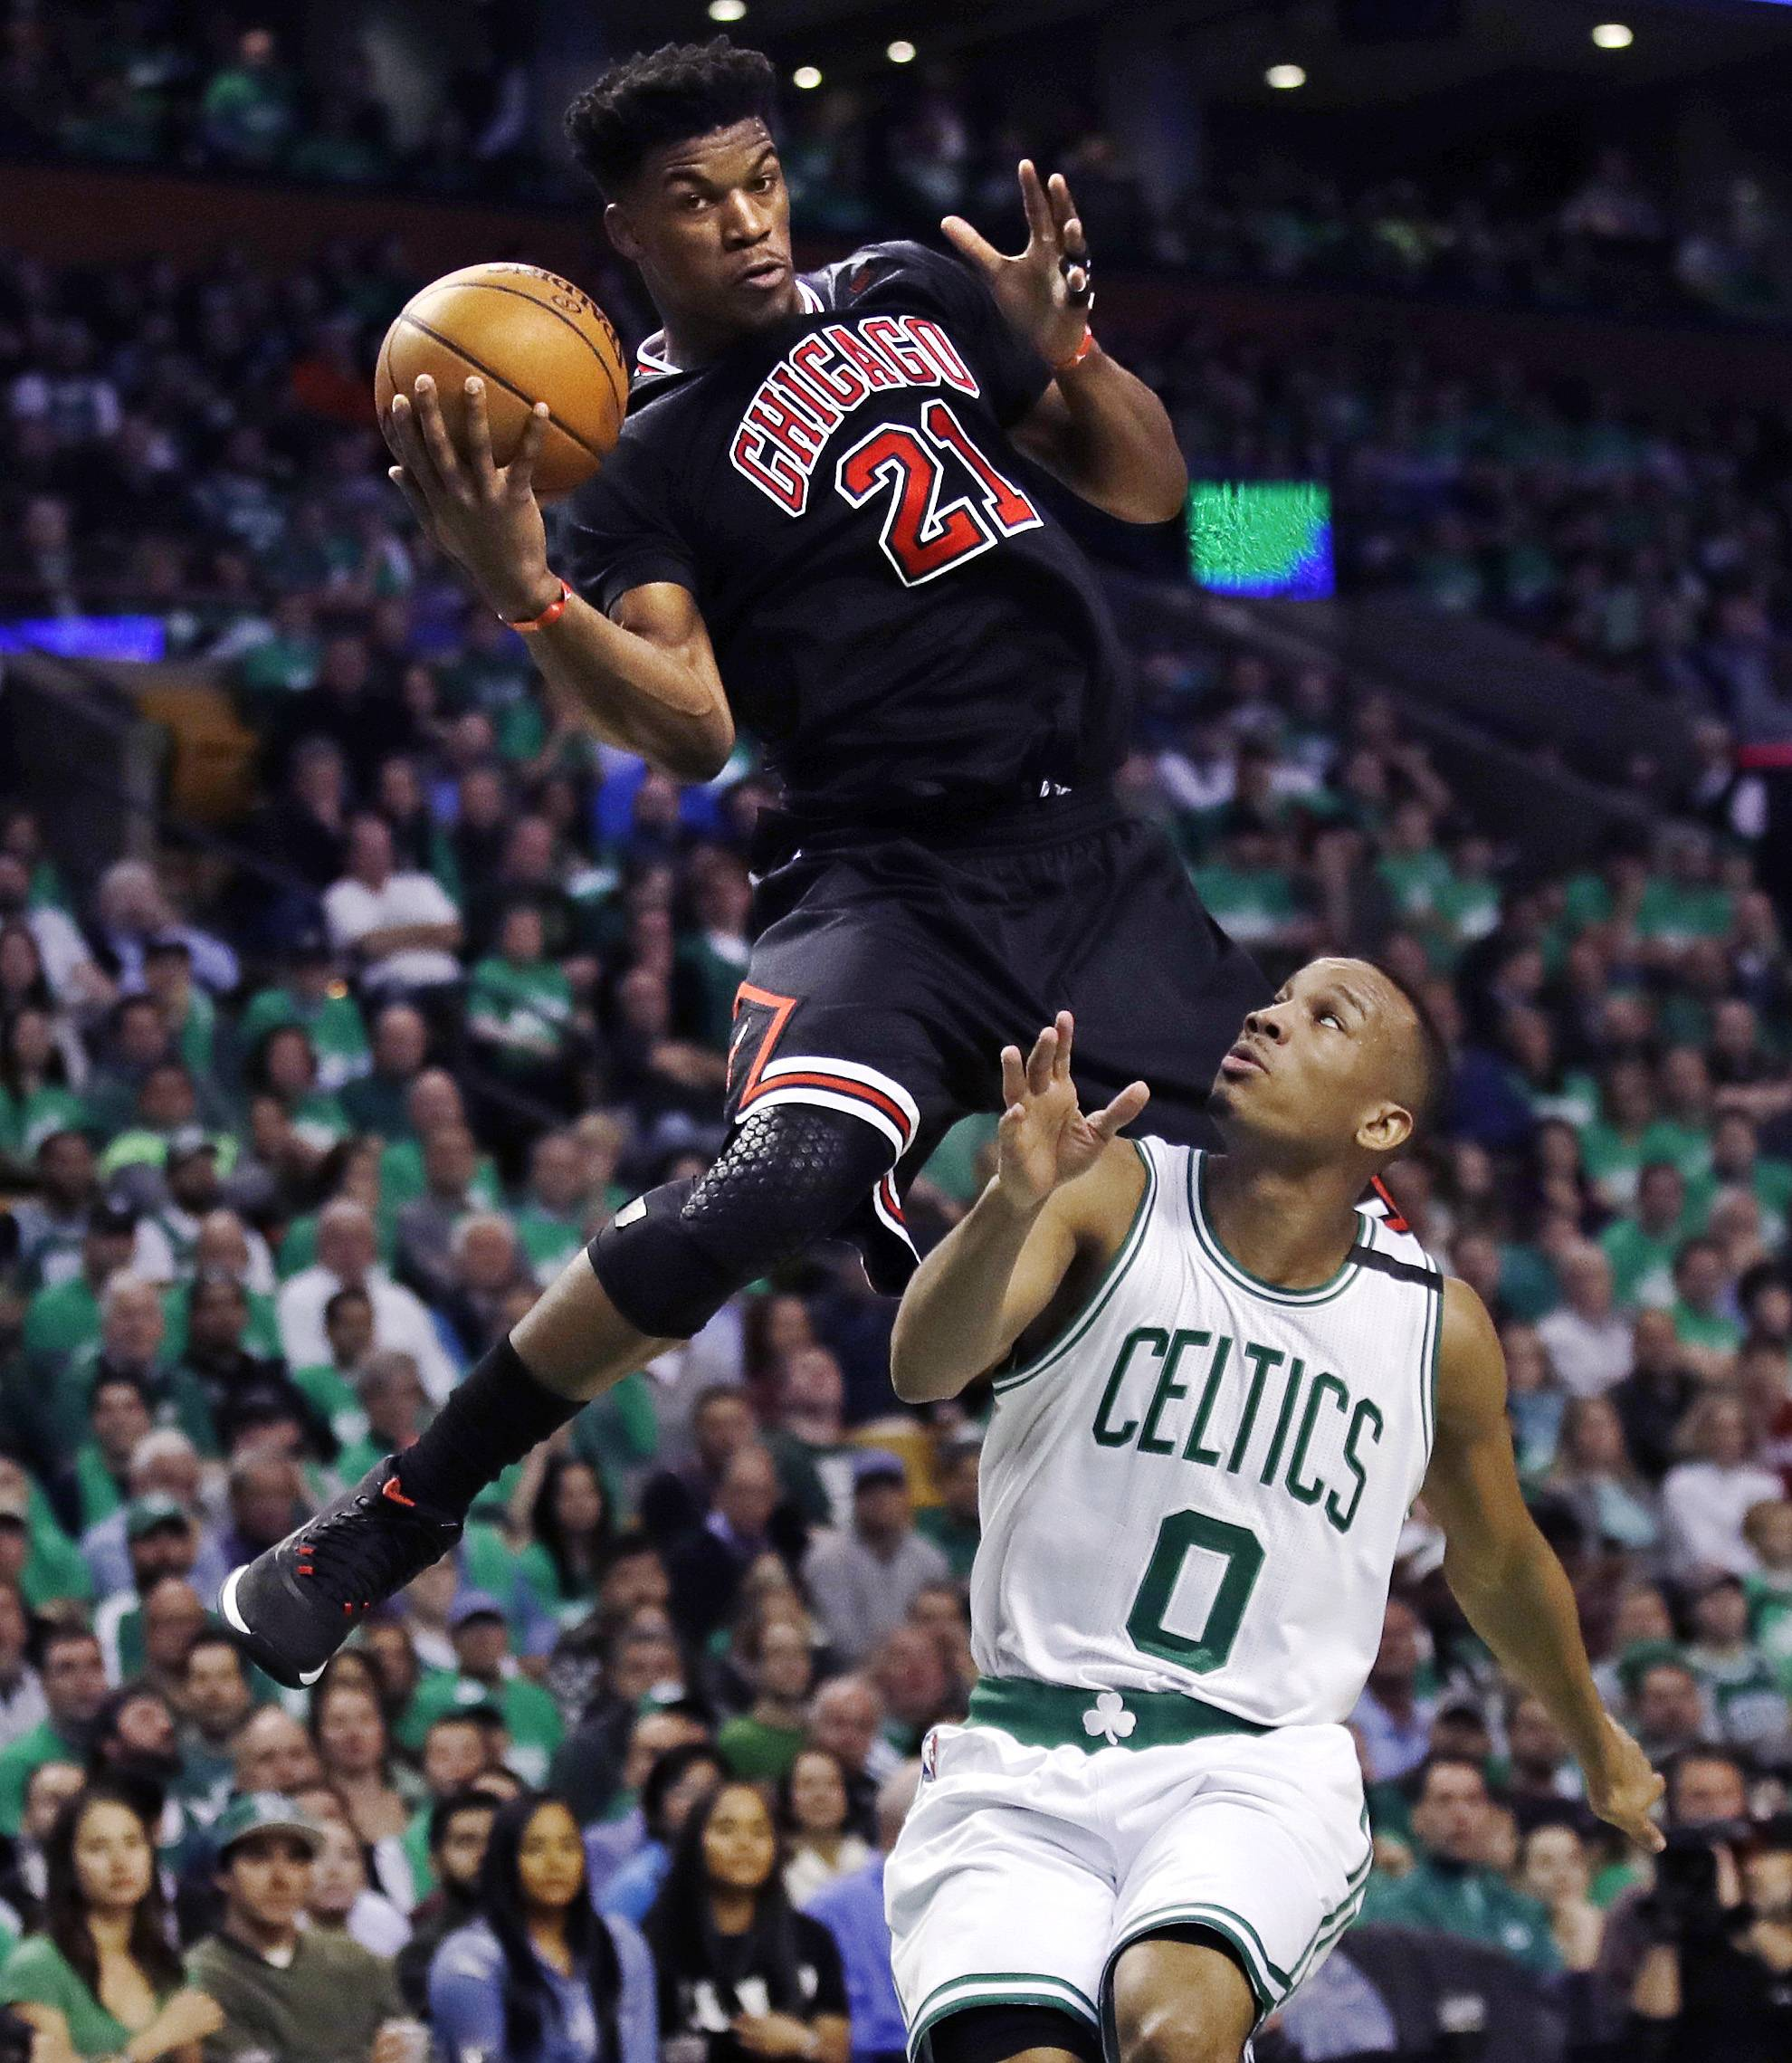 Chicago Bulls forward Jimmy Butler (21) catches a pass high above Chicago Bulls guard Isaiah Canaan (0) during the second quarter of a first-round NBA playoff basketball game in Boston, Tuesday, April 18, 2017.